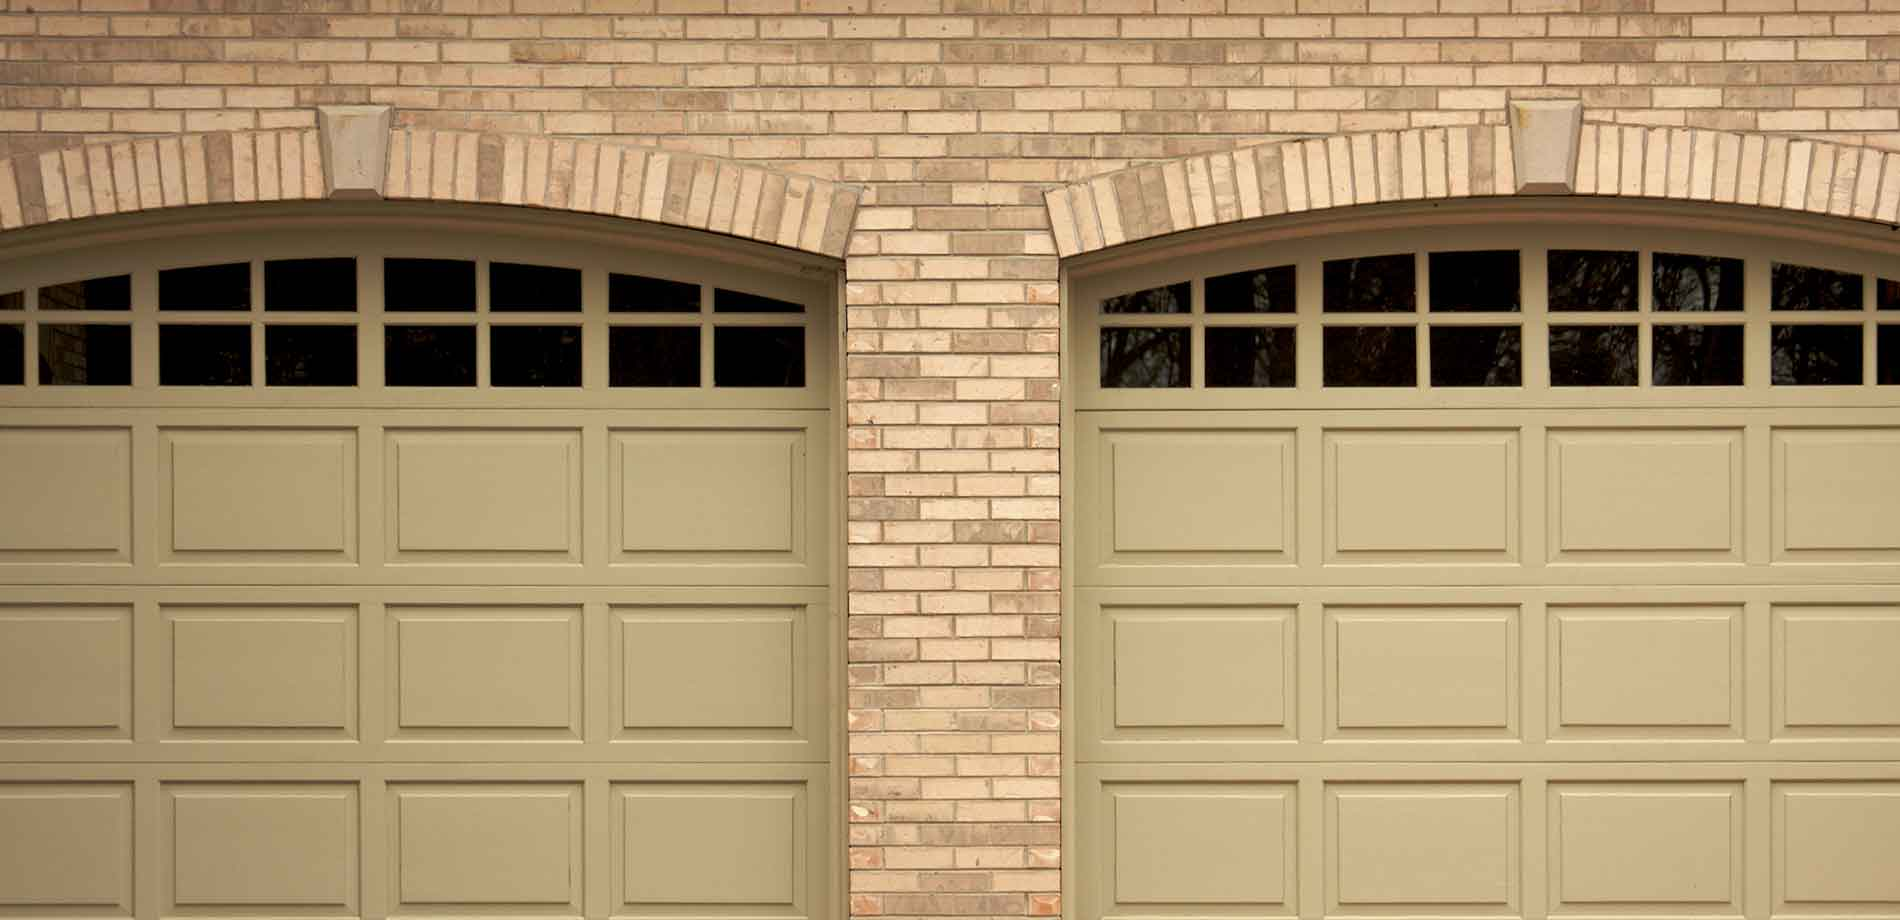 Call the professionals! & Garage Installations \u0026 Repairs: Brick Toms River NJ: Garage Door ...